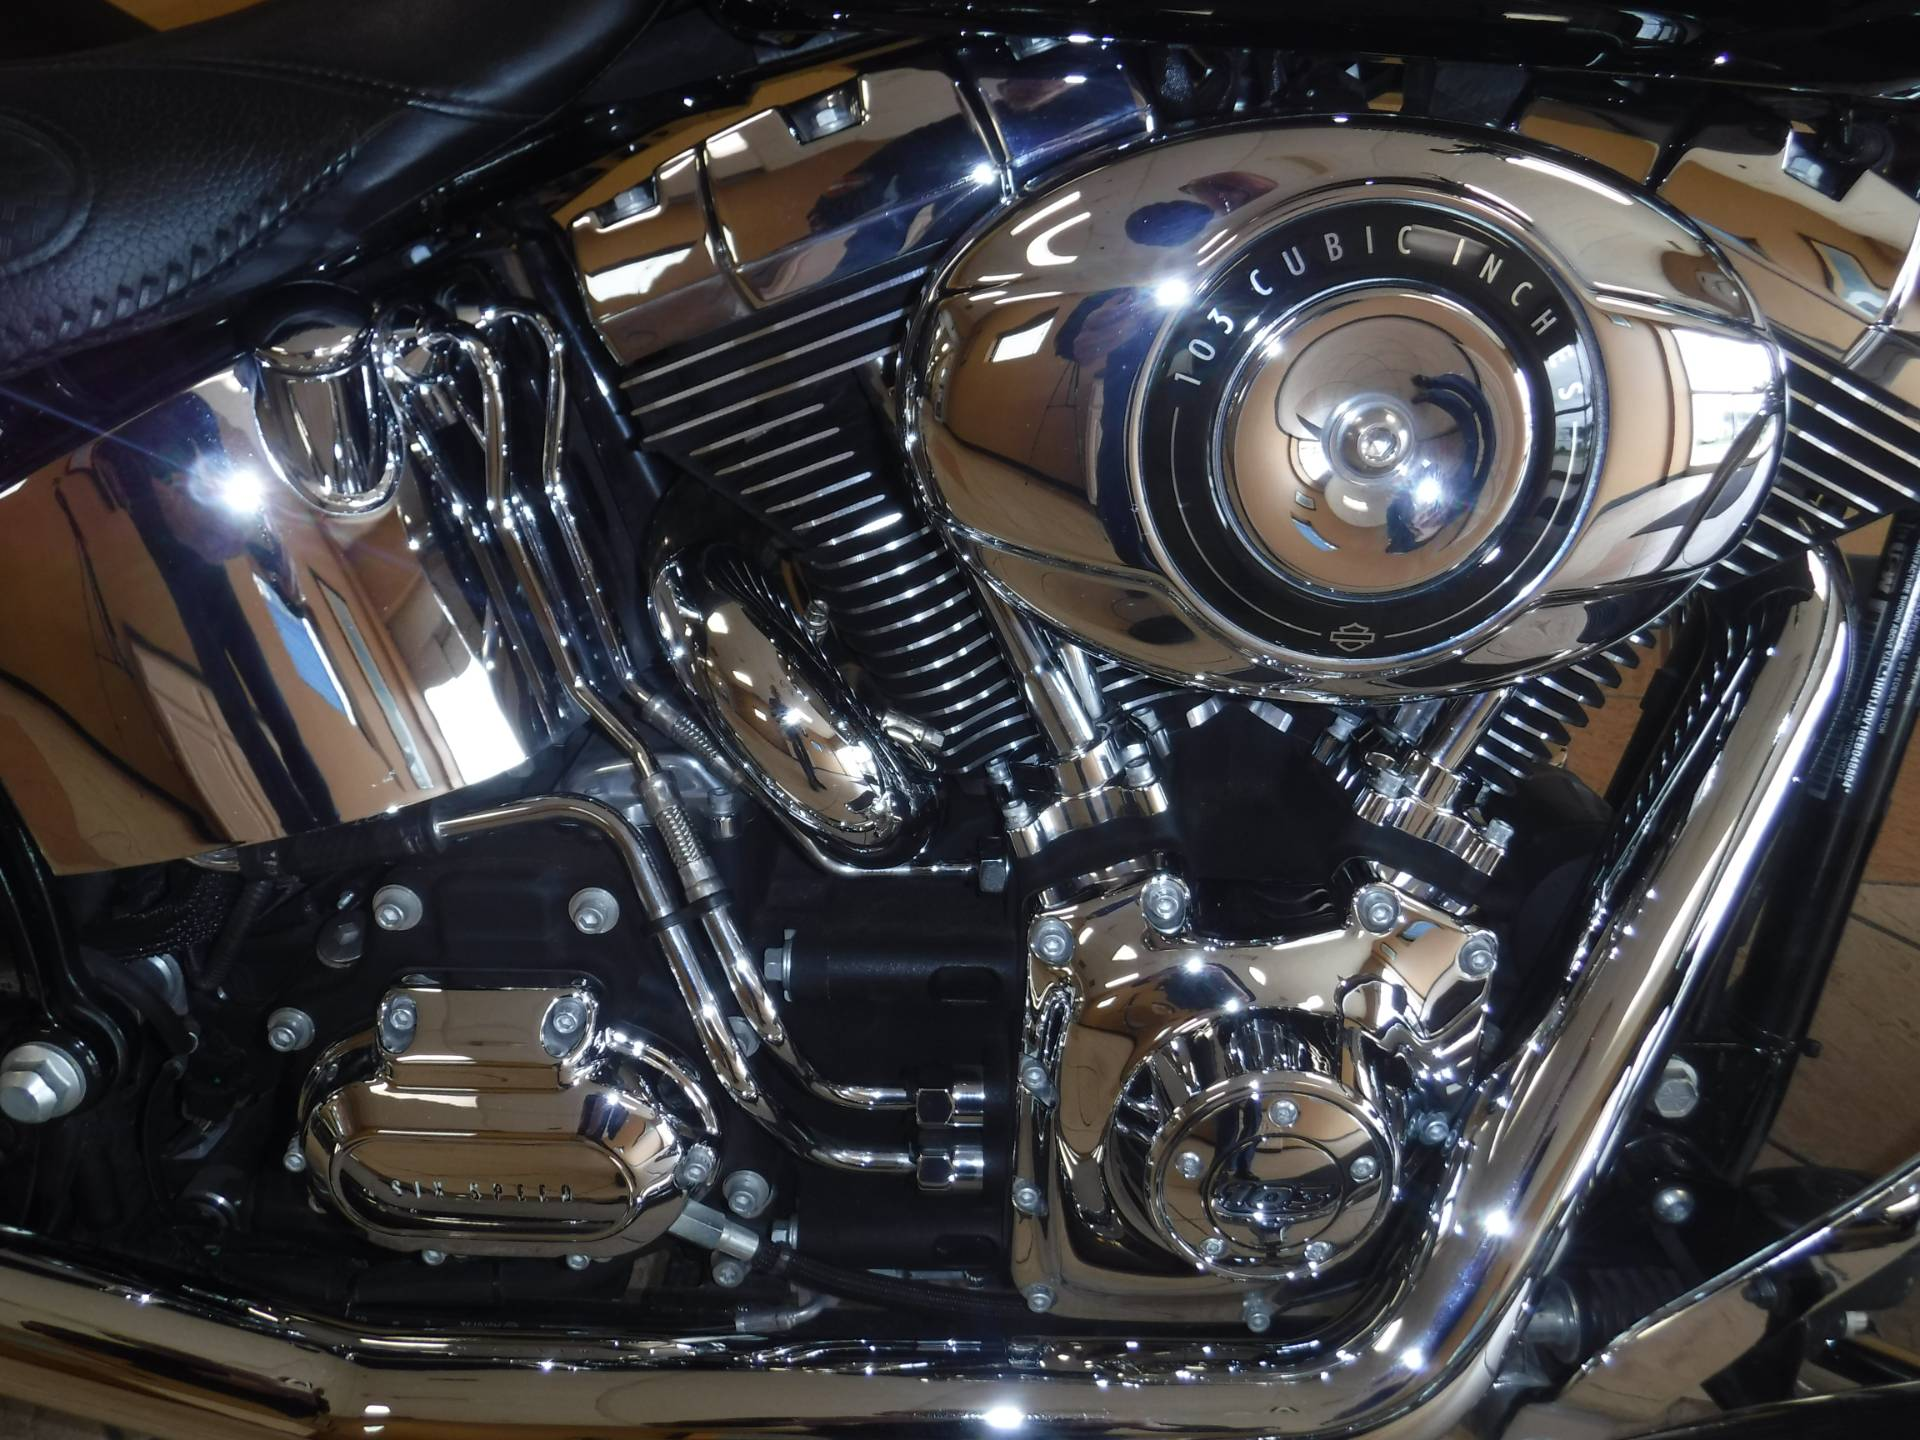 2014 Harley-Davidson Softail® Deluxe in Waterloo, Iowa - Photo 2